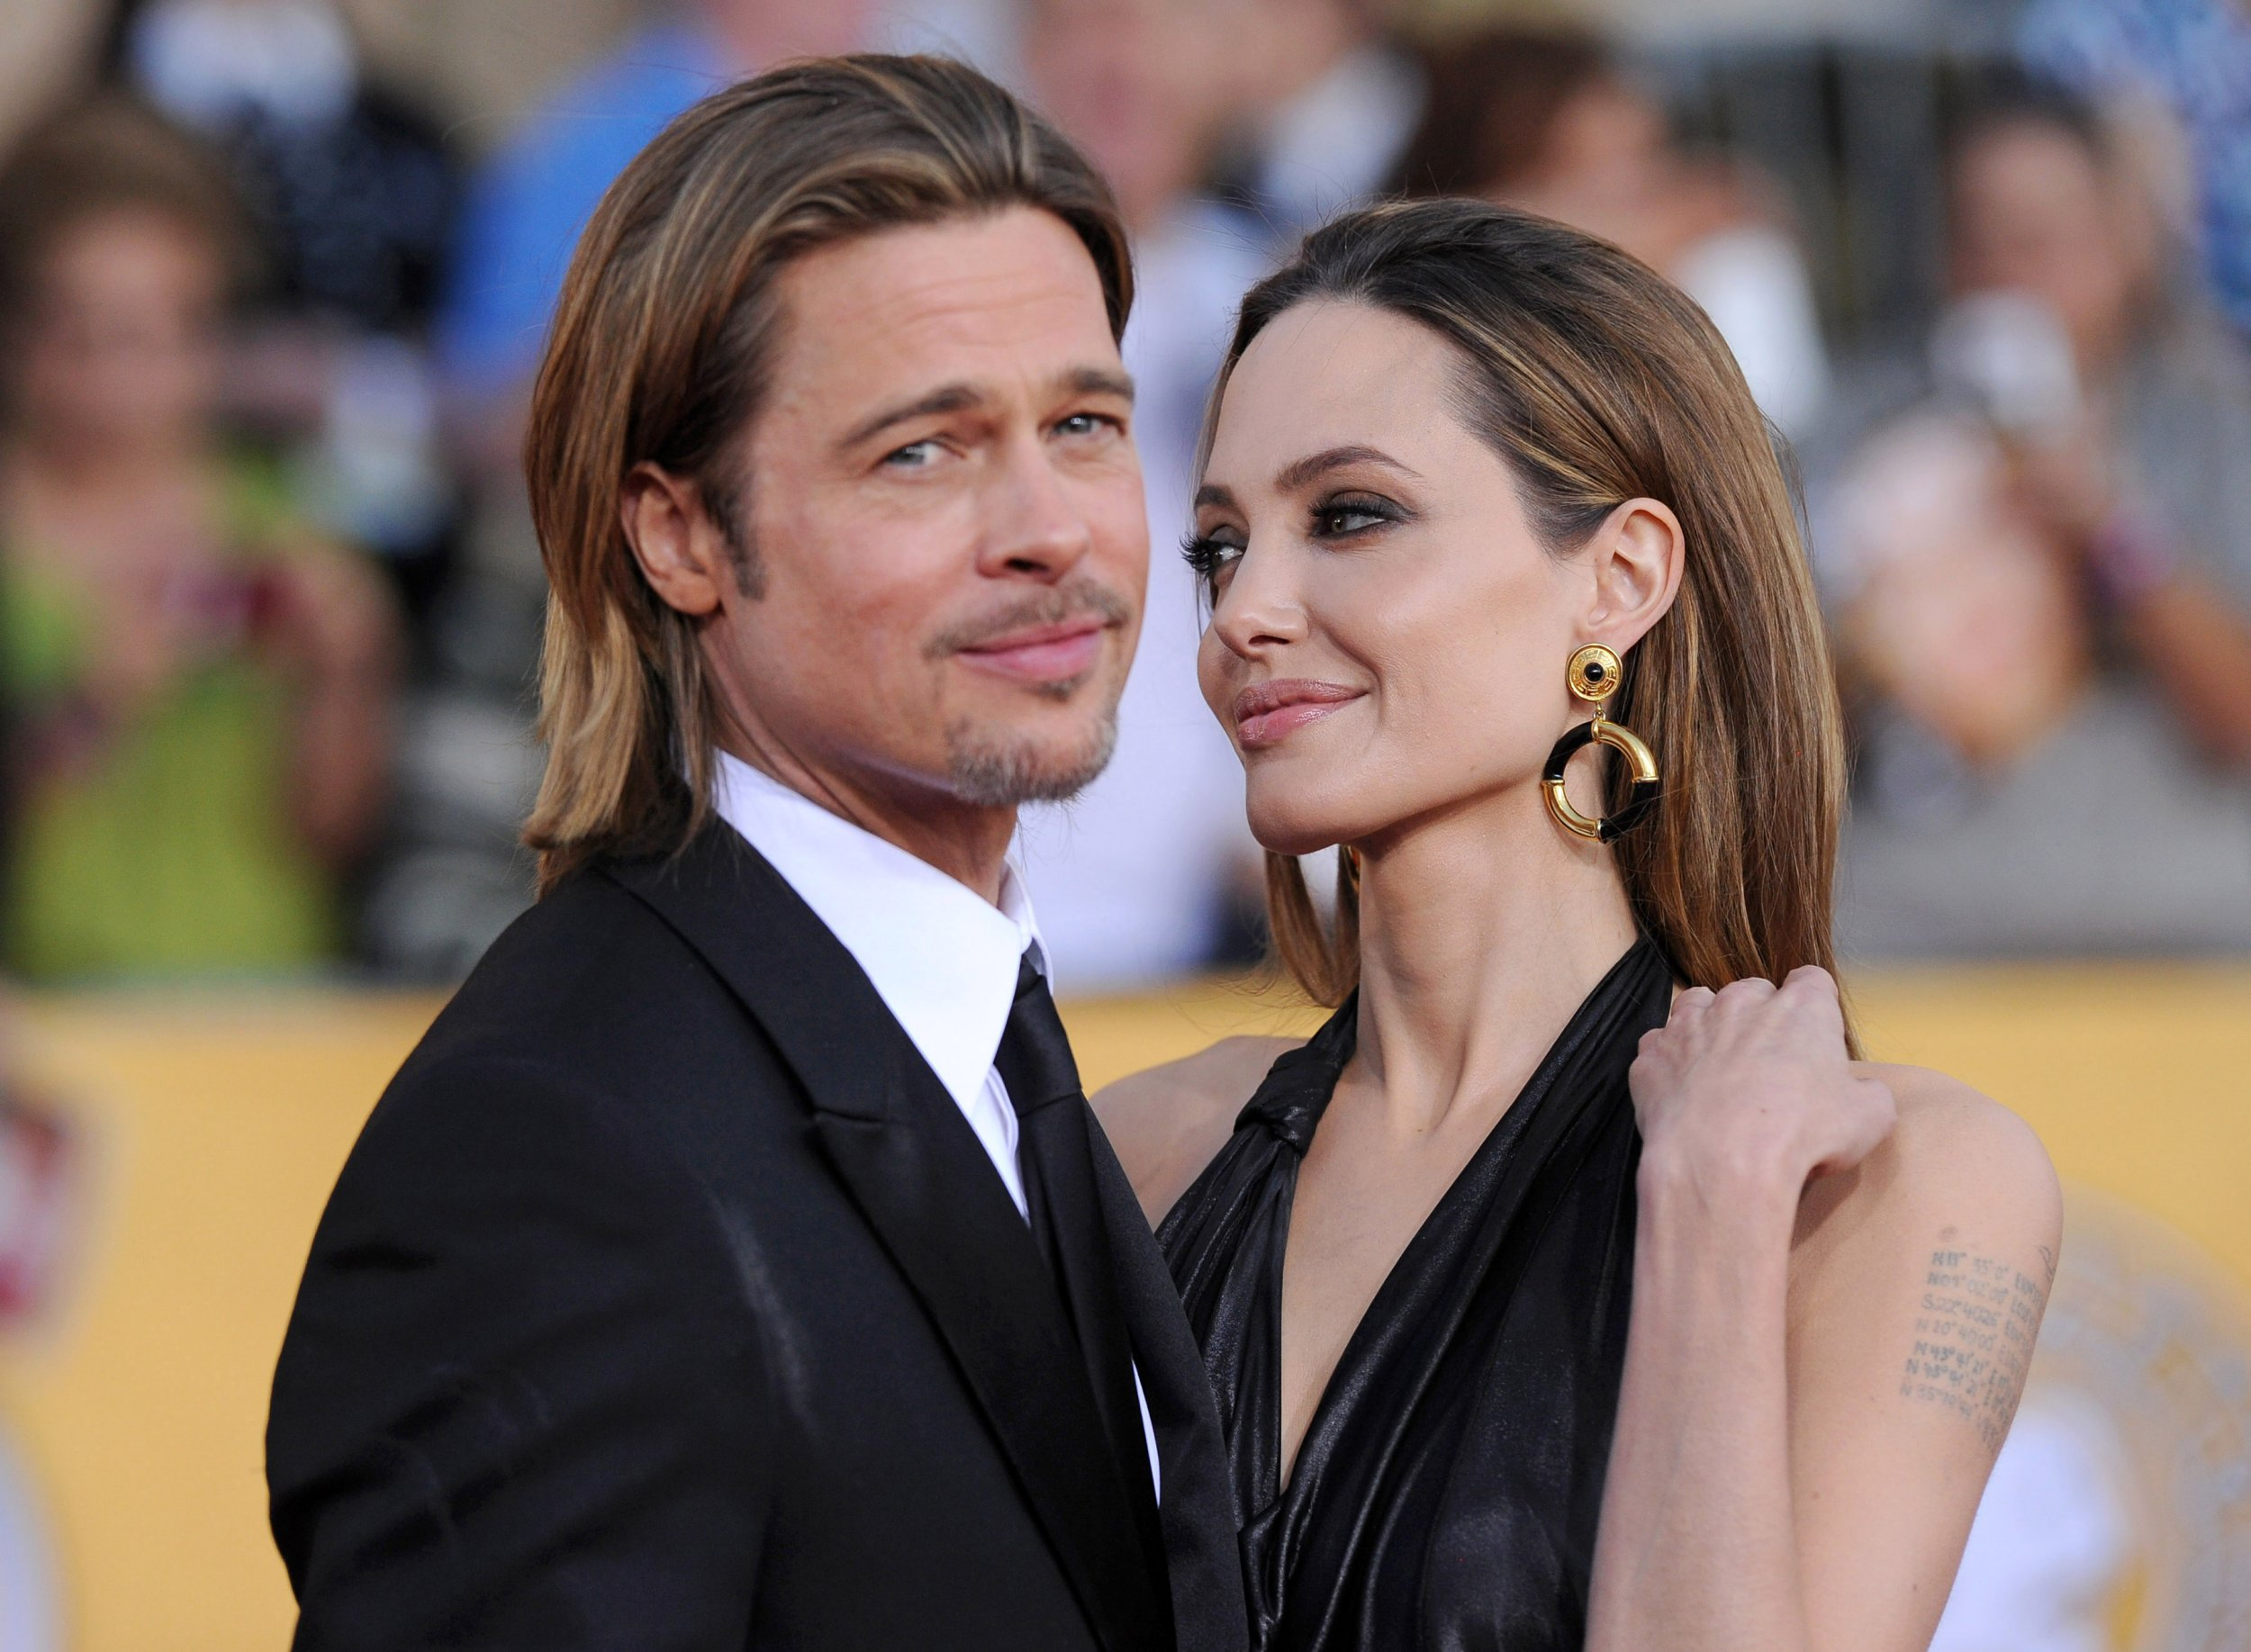 Angelina Jolie files for divorce from Brad Pitt. The actress cites irreconcilable differences as the reason for the split and is asking for physical custody of the couple's six children. ARCHIVE PICTURE: 18th Annual Screen Actors Guild Awards. Shrine Auditorium, Los Angeles, CA. January 29, 2012. Pictured: Angelina Jolie and Brad Pitt. Credit: Axelle/GoffPhotos.com Ref: KGC-300/120226A1 **UK, Middle East Sales Only** Credit: Axelle/BG/GoffPhotos.com Ref: KGC-300/120226A1 **UK, Spain, Italy, China, South Africa Sales Only**